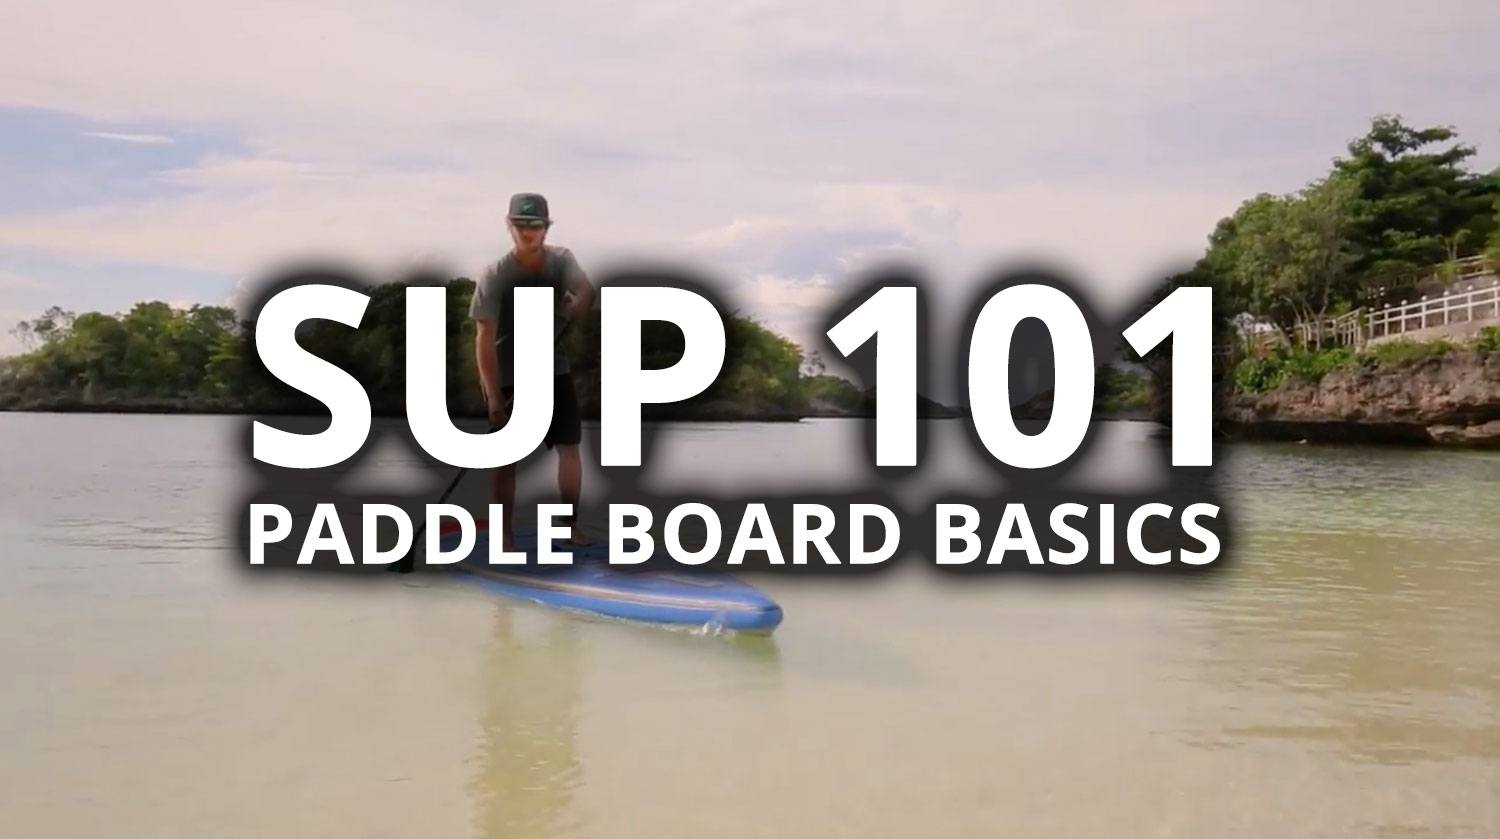 paddle boarding best tips